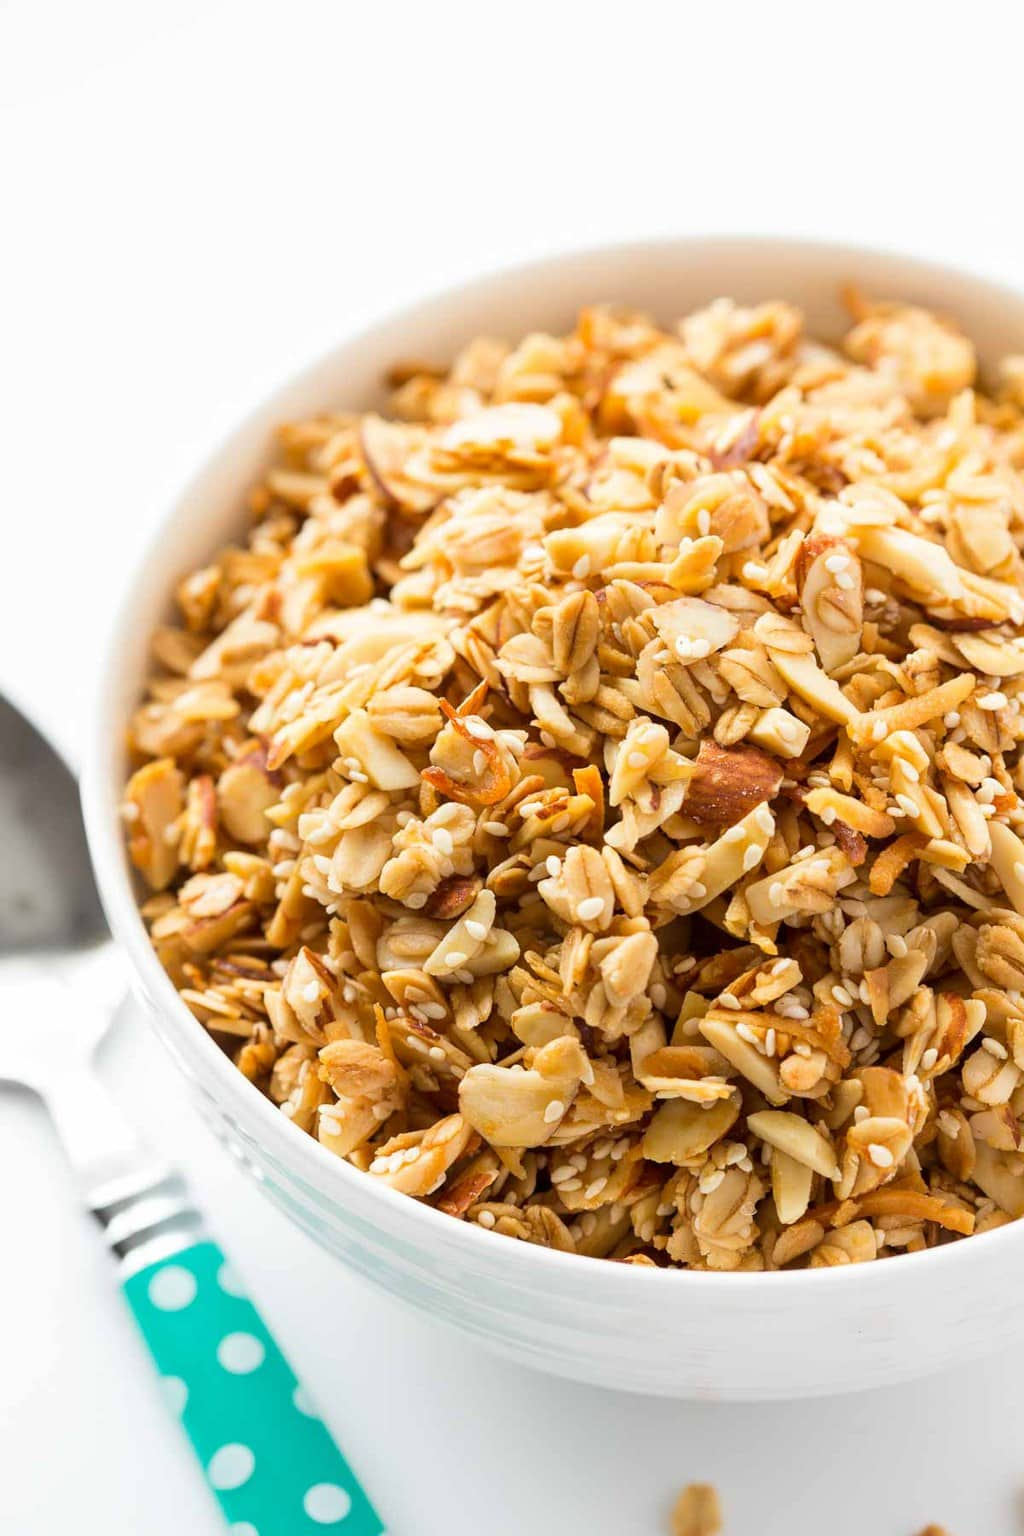 Vertical picture of Best Ever Granola in a white bowl